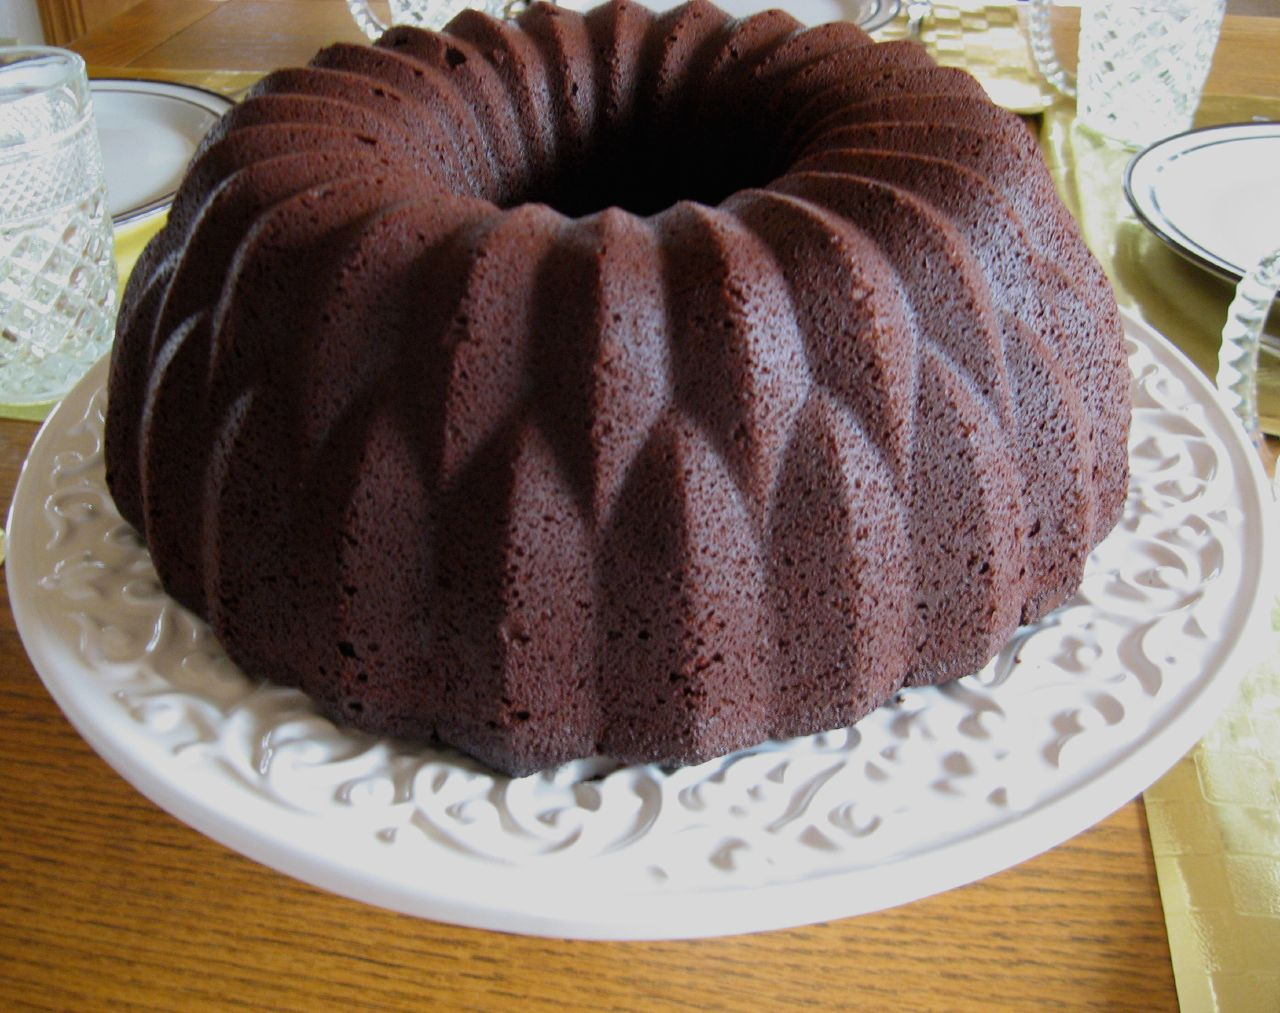 Round Chocolate Cake Recipe